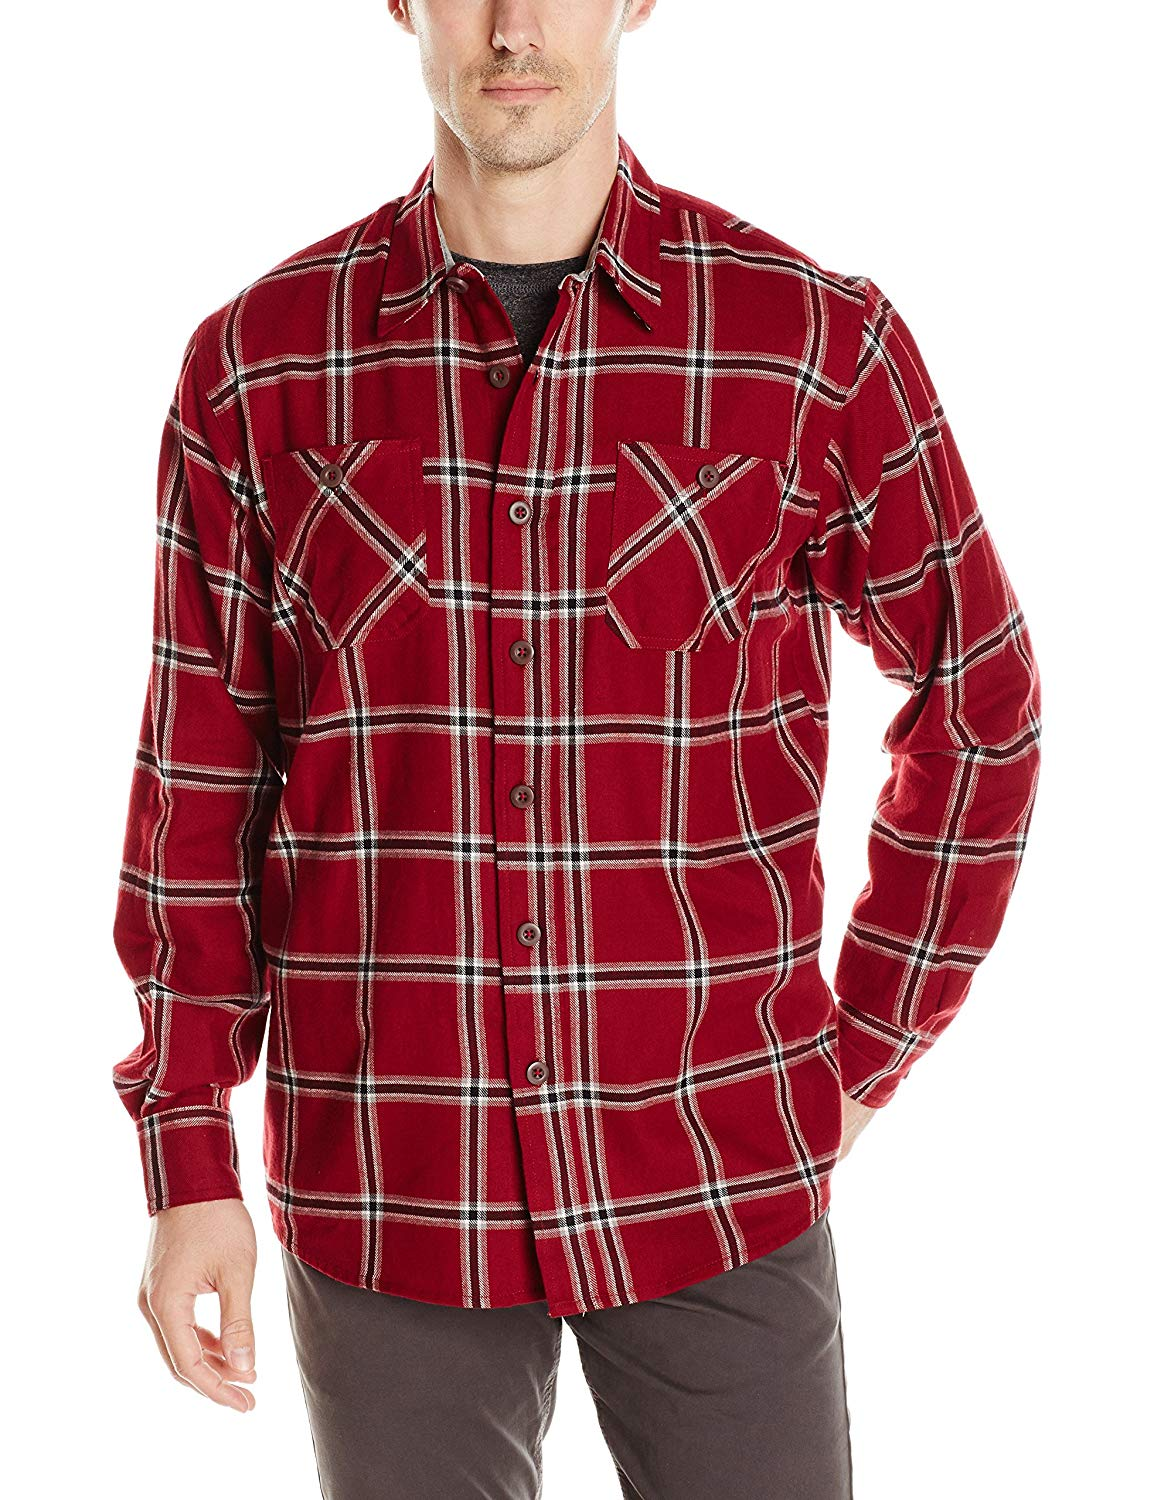 Wrangler Authentics Men's Long Sleeve Flannel Shirt